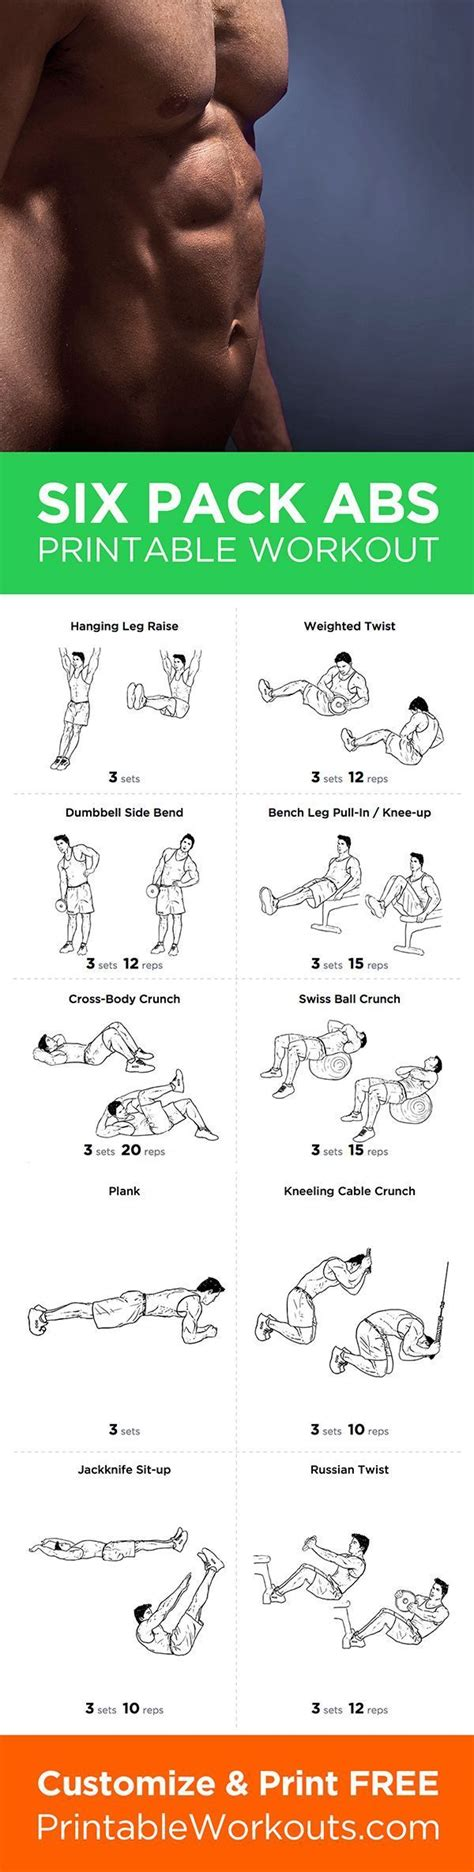 Pin auf Chest workouts